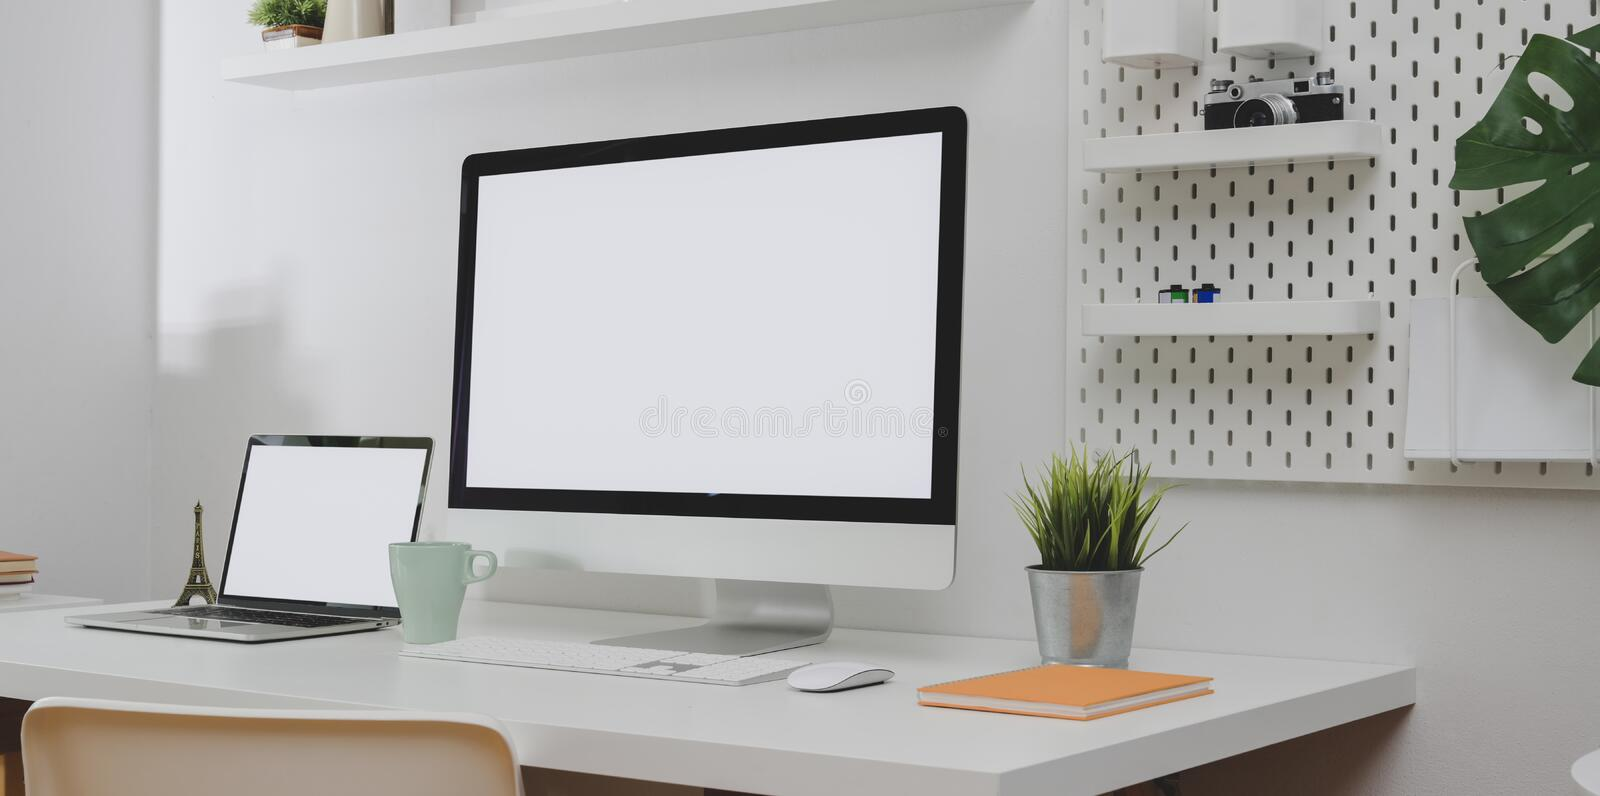 Desktop computer and blank screen laptop with copy space and office decorations in minimal white office room royalty free stock photo